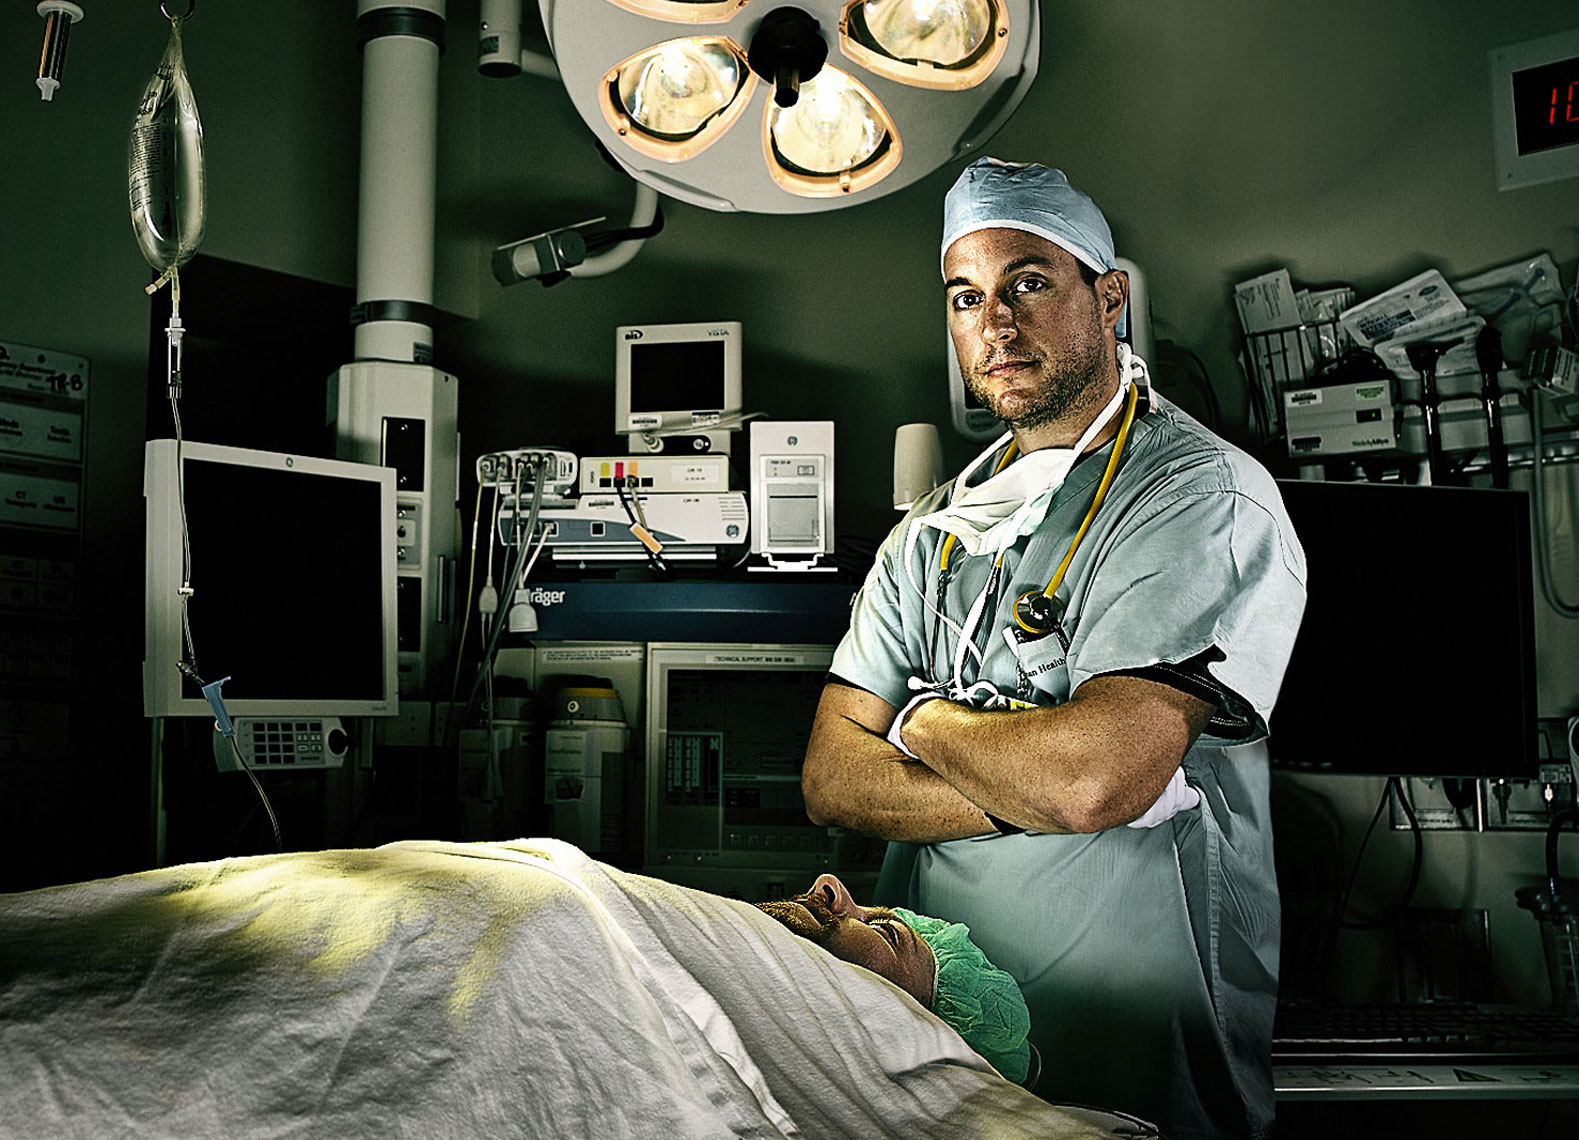 Anesthesiologist and patient in a surgical suite.